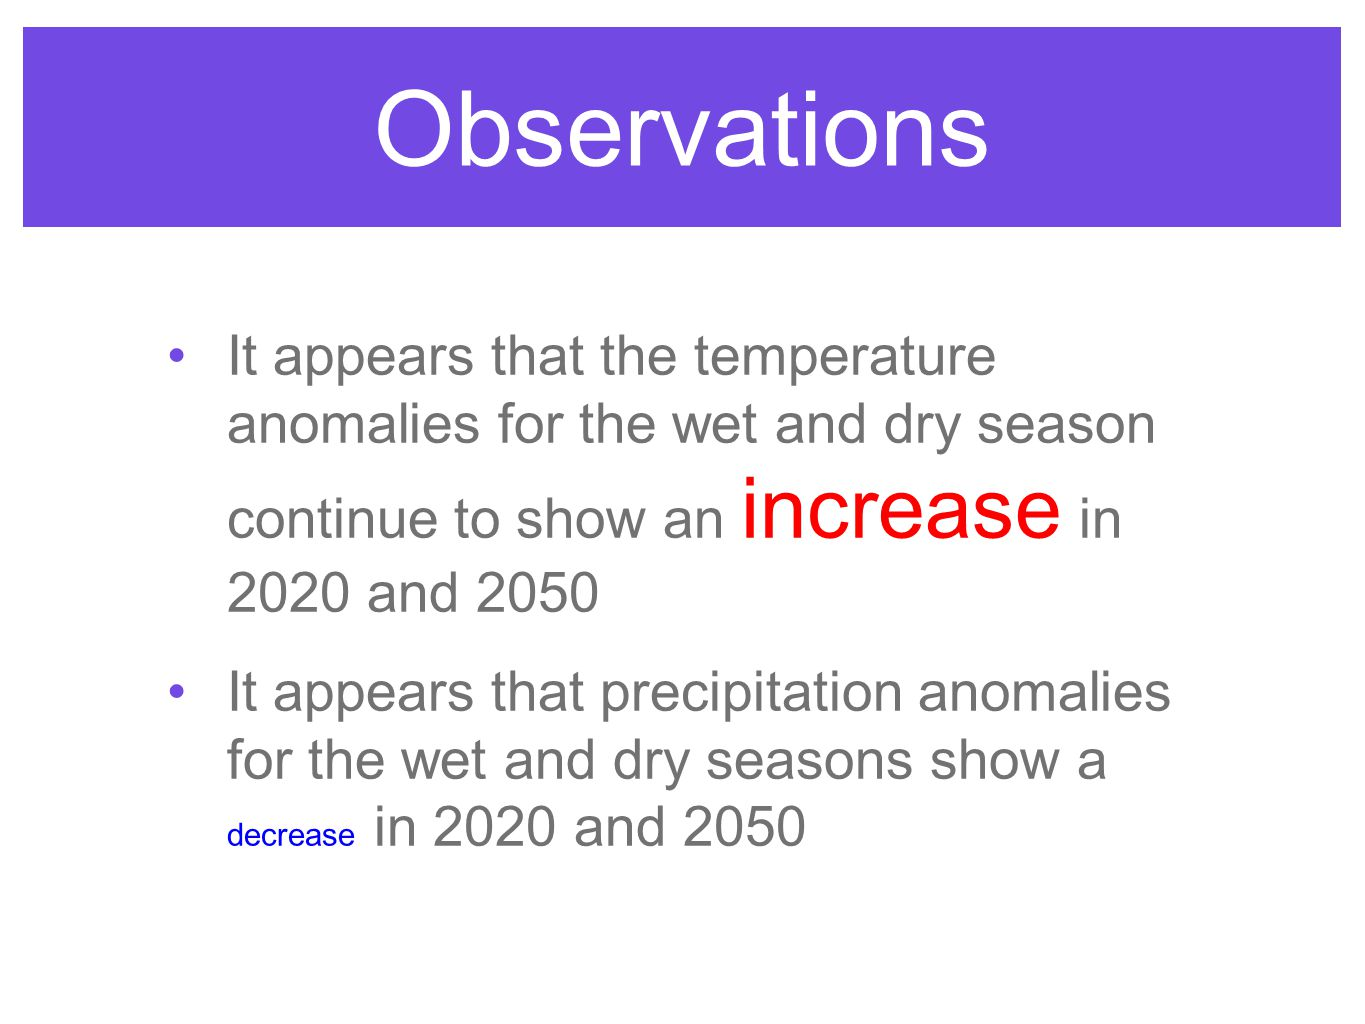 Observations It appears that the temperature anomalies for the wet and dry season continue to show an increase in 2020 and 2050 It appears that precipitation anomalies for the wet and dry seasons show a decrease in 2020 and 2050